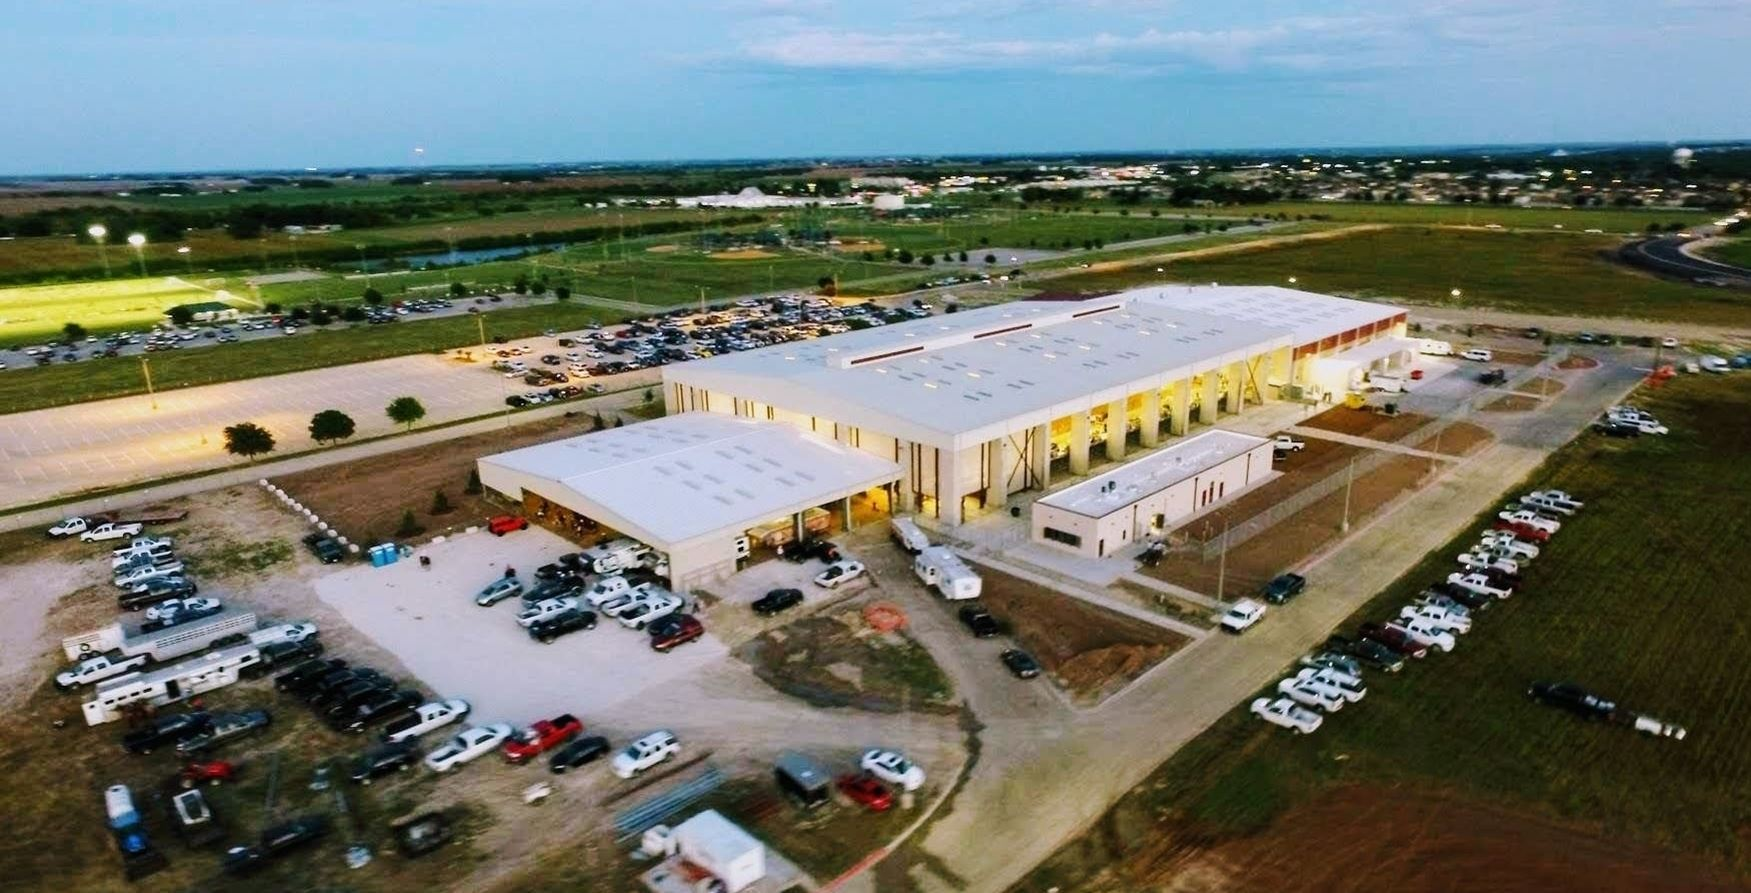 Aerial view of the Williamson County Expo Center